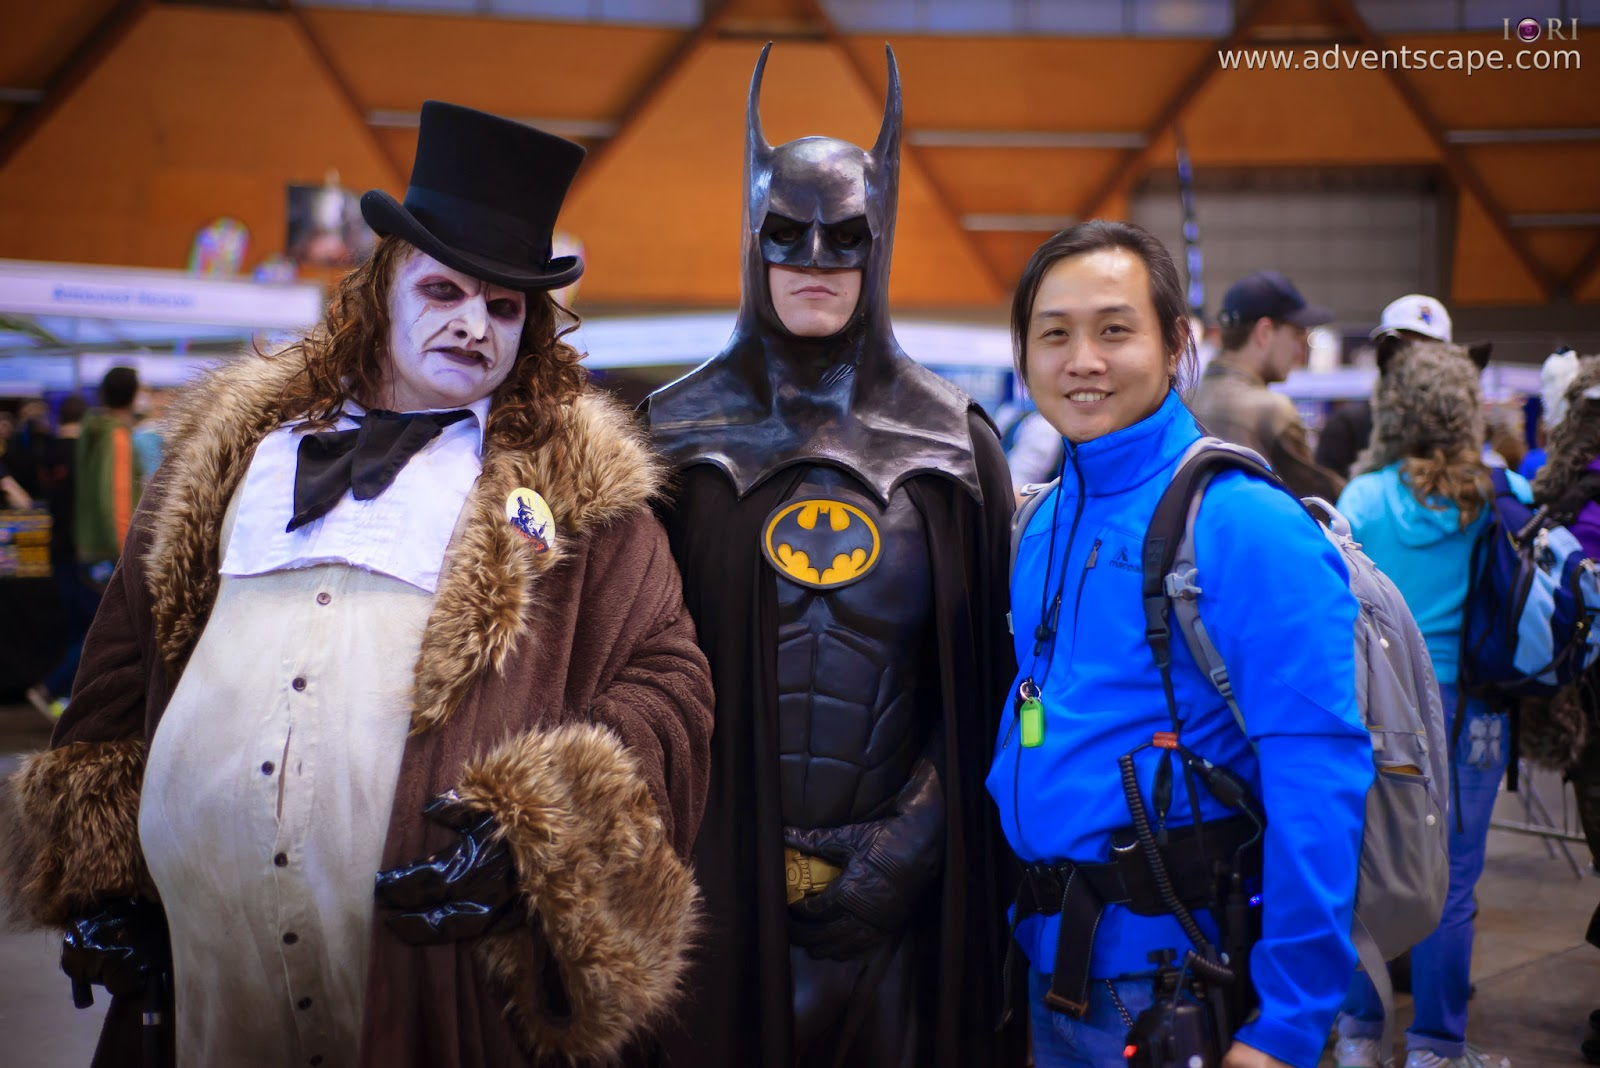 DC, Australia, Australian Landscape Photographer, Cosplay, Homebush, New South Wales, NSW, Philip Avellana, Sydney Olympic Park, Batman, Penguin, Tim Burton